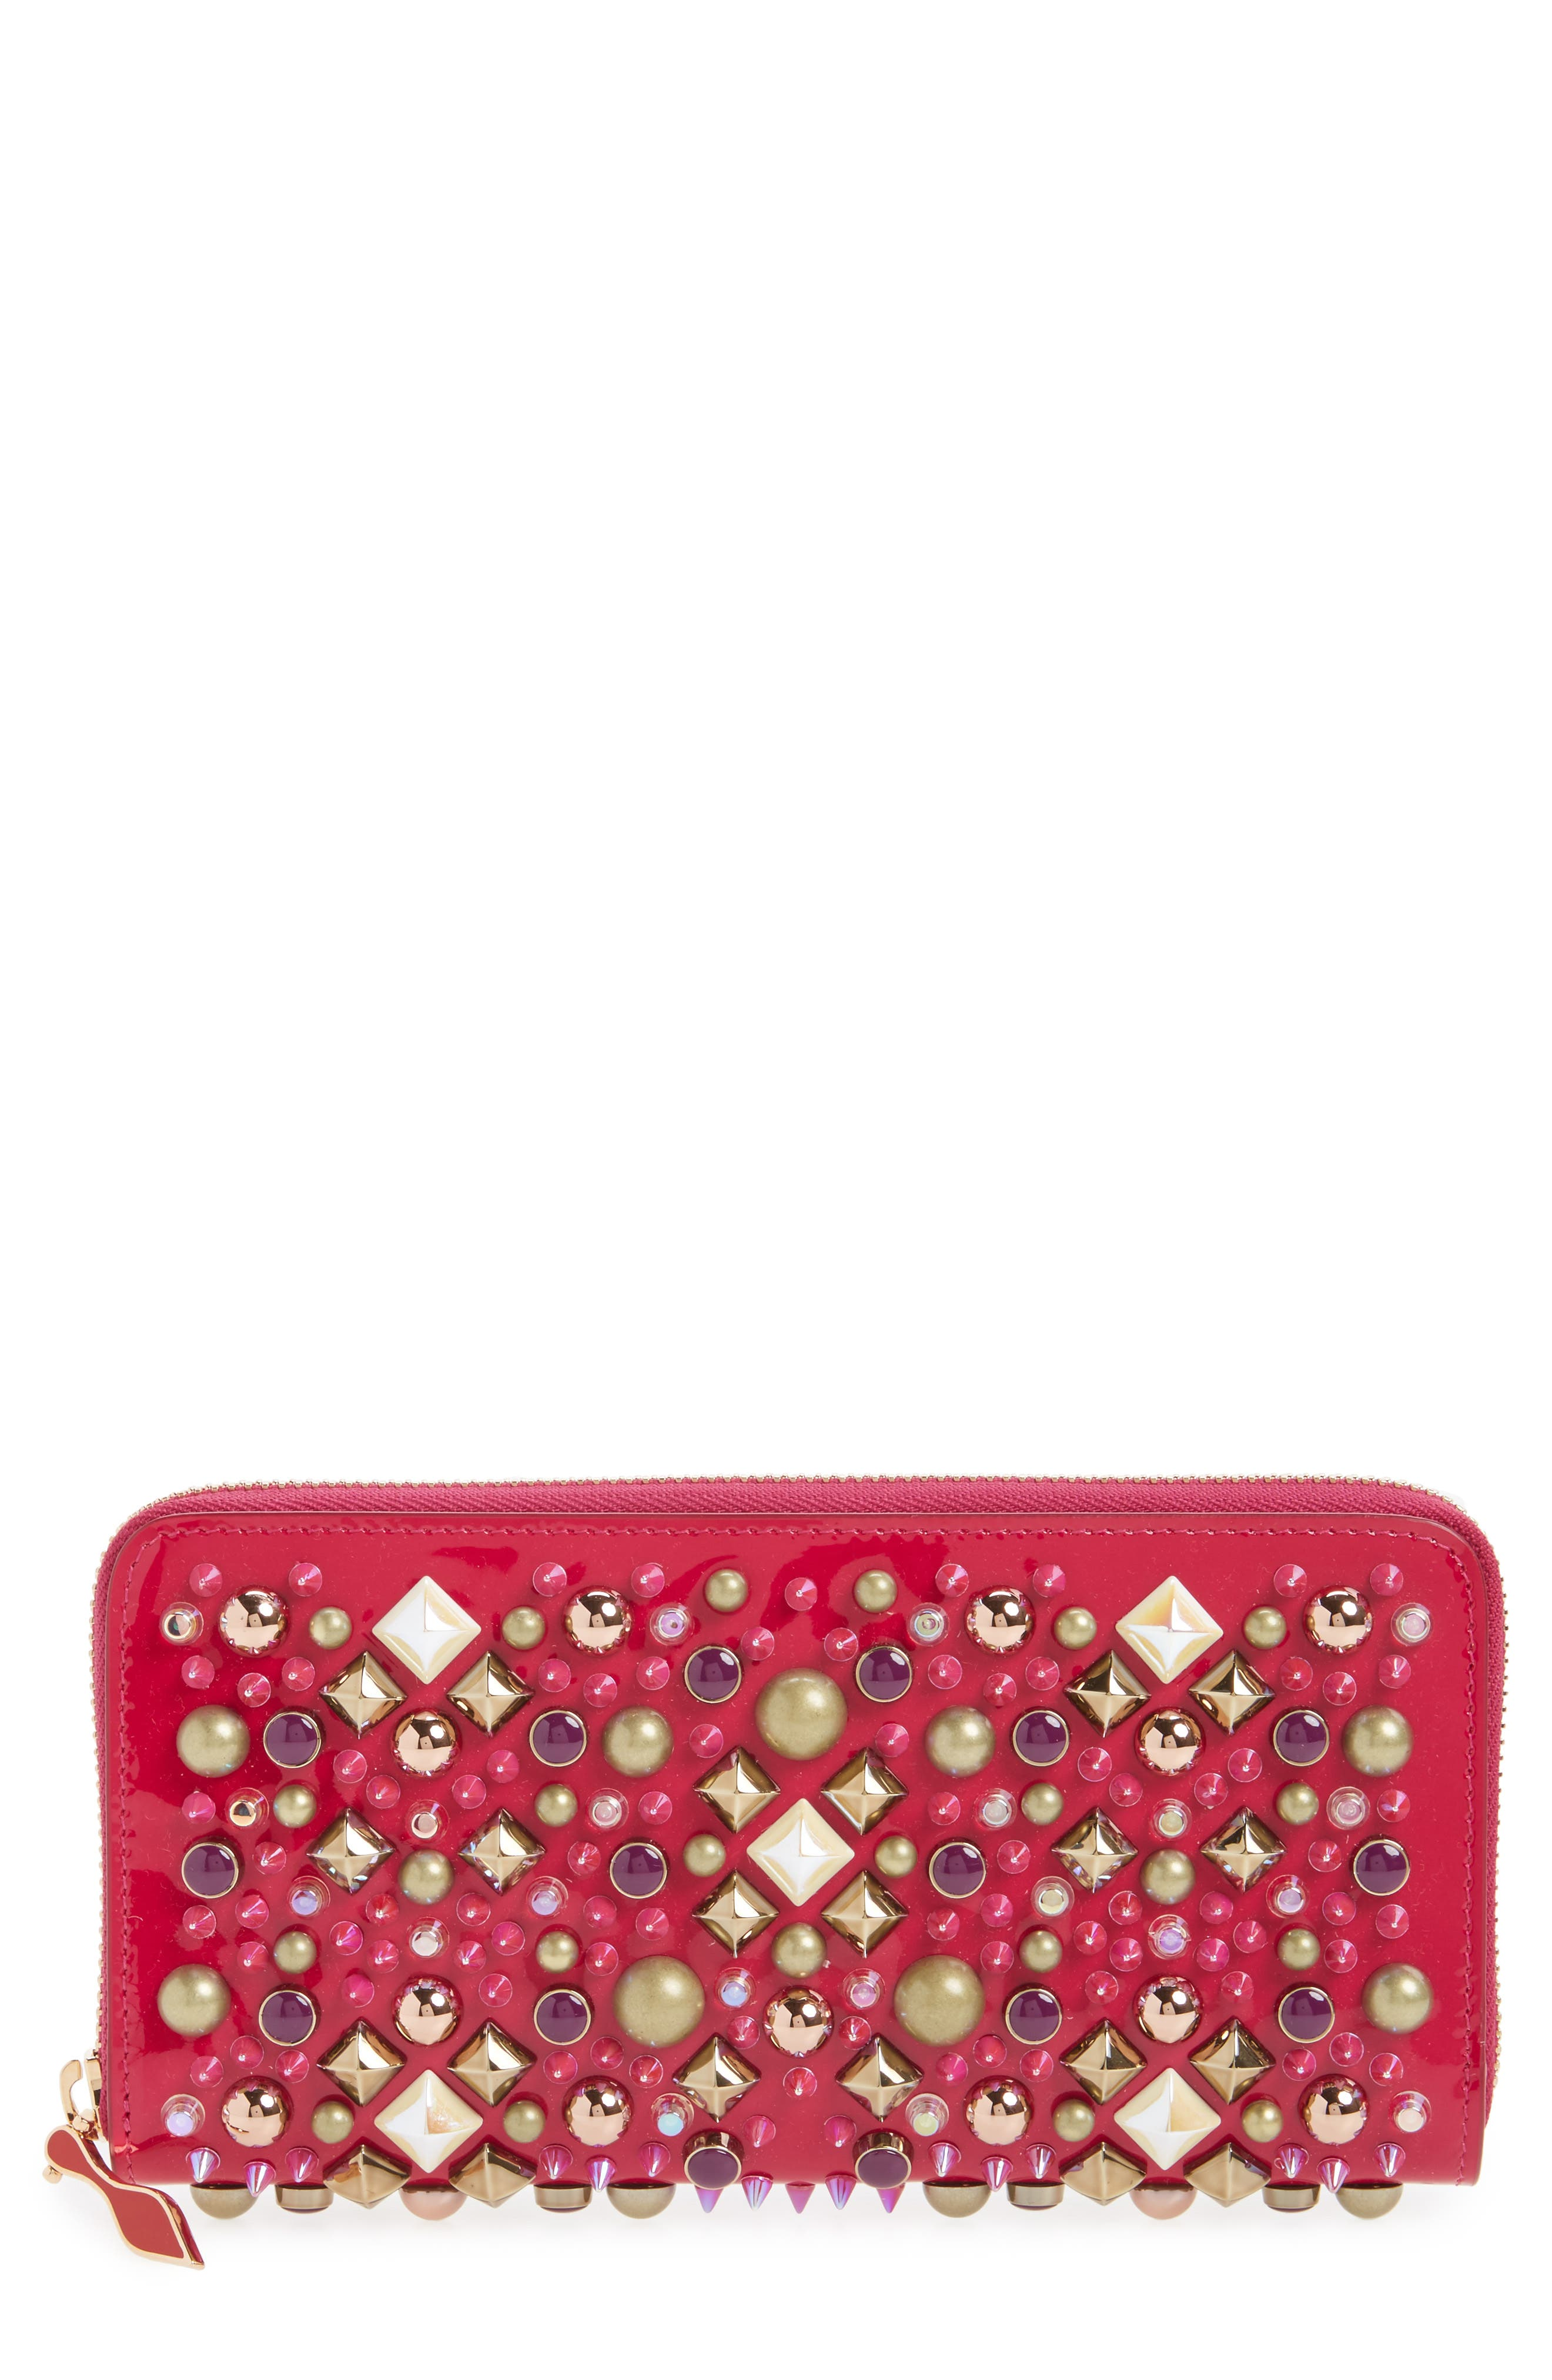 Main Image - Christian Louboutin Panettone Spiked Patent Leather Wallet